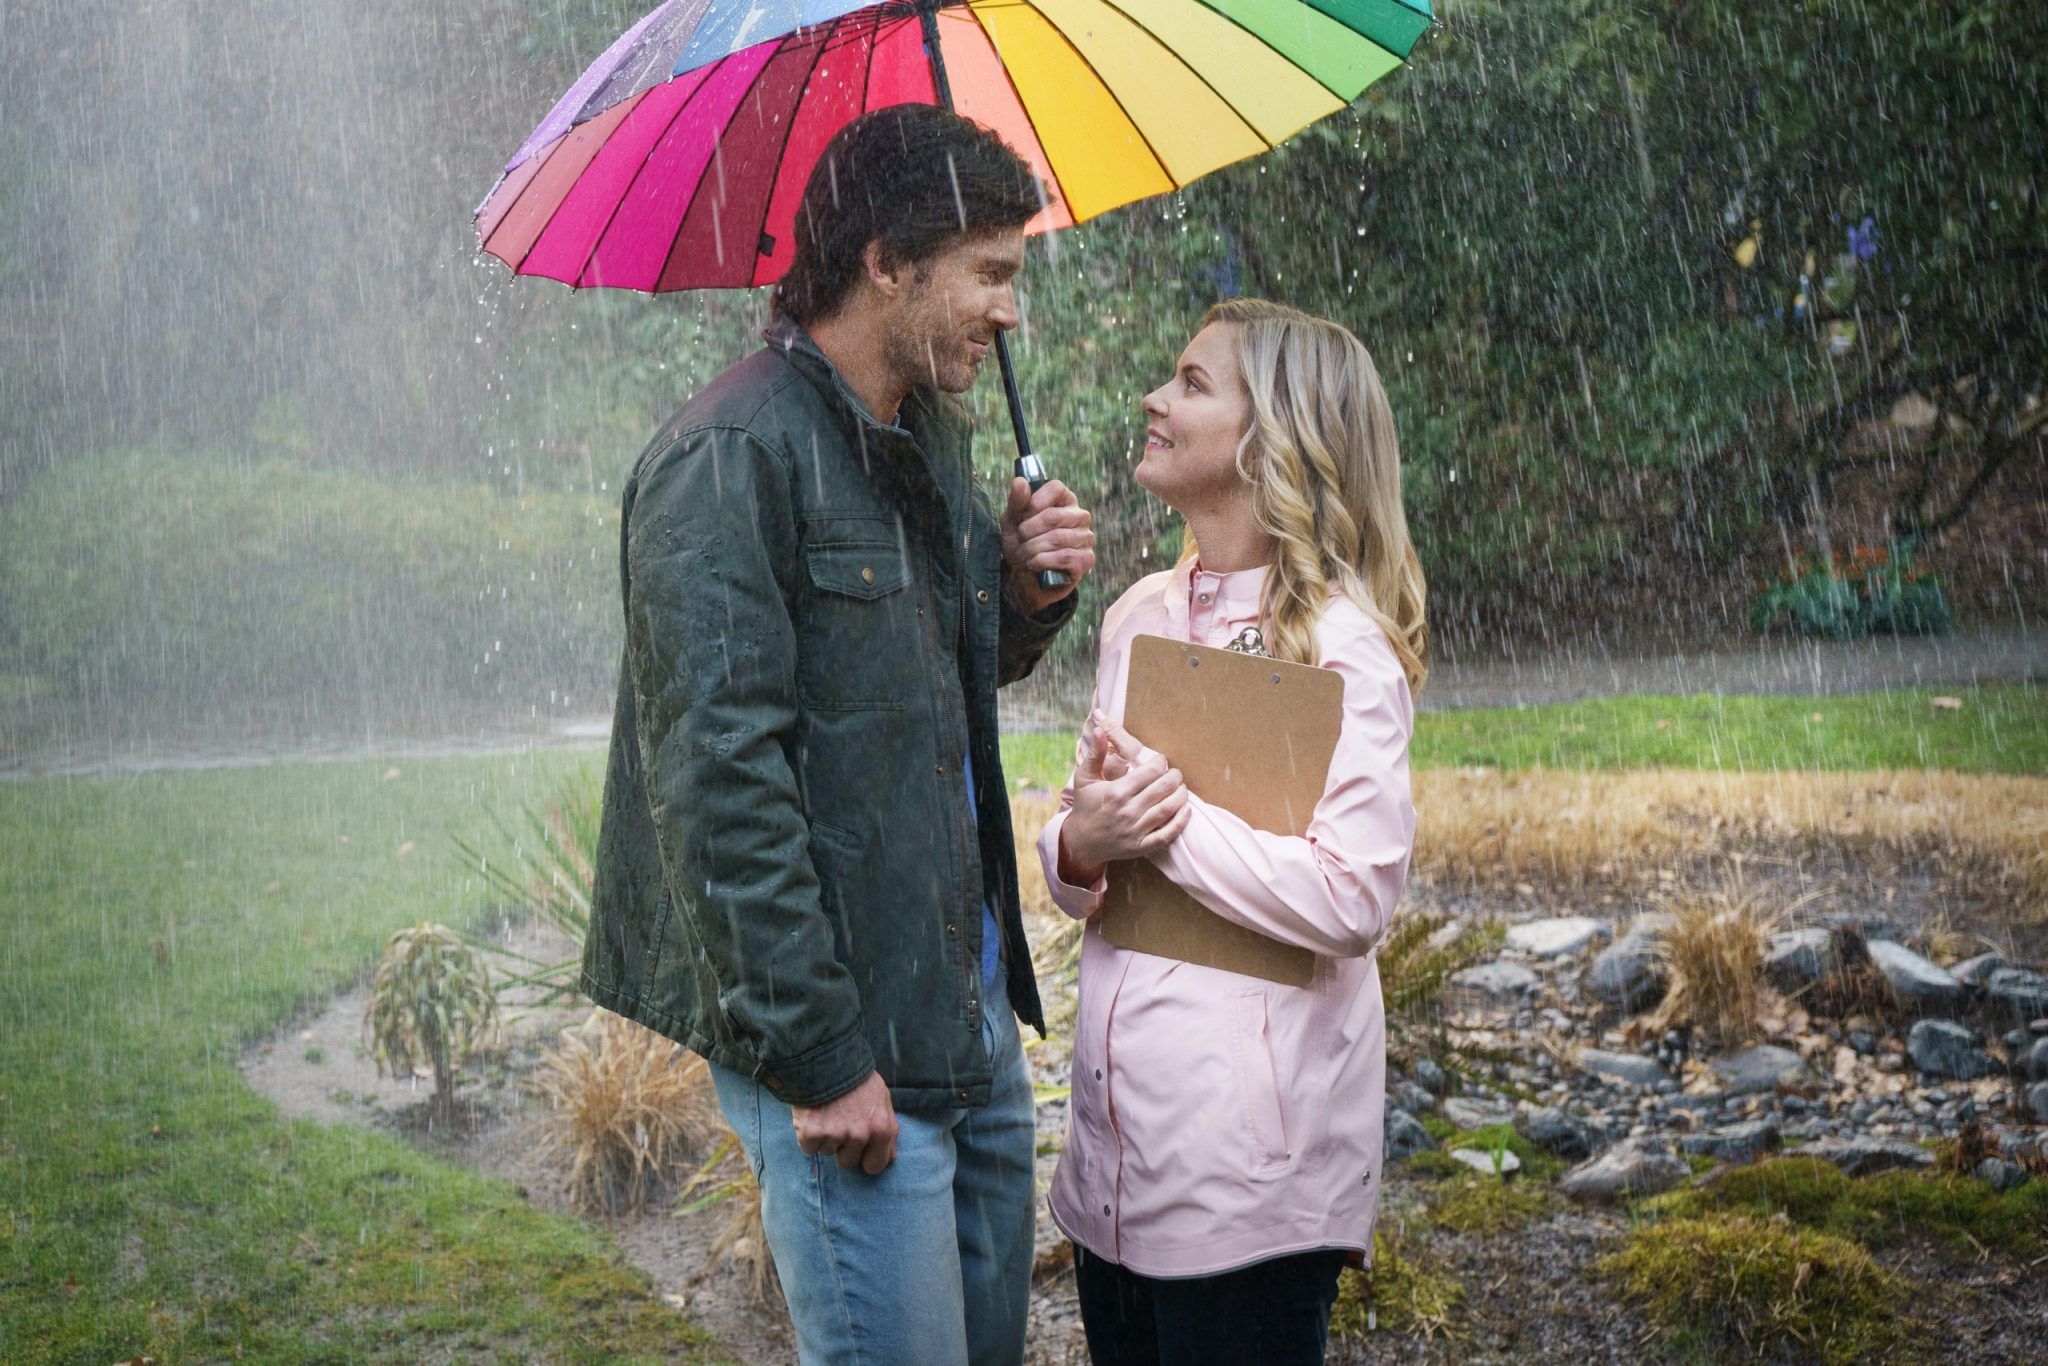 Hallmark, A Little Romance, On-air weather reporter Leah Waddell is getting weary of her bleak dating life and inability to be taken seriously as a budding meteorologist. At her wits end, she makes the decision to stay single and focus on her career for a full year. As soon as she makes this commitment, it literally starts pouring rain and men. As Leah deflects multiple romantic offers, she befriends her new neighbor Mark, a handsome dairy farmer who teaches her methods to predict the weather by observing signs in nature. Photo: Christopher Russell, Cindy Busby Credit: ©2020 Crown Media United States LLC/Photographer: Courtesy of Luba Popovic/Johnson Productions